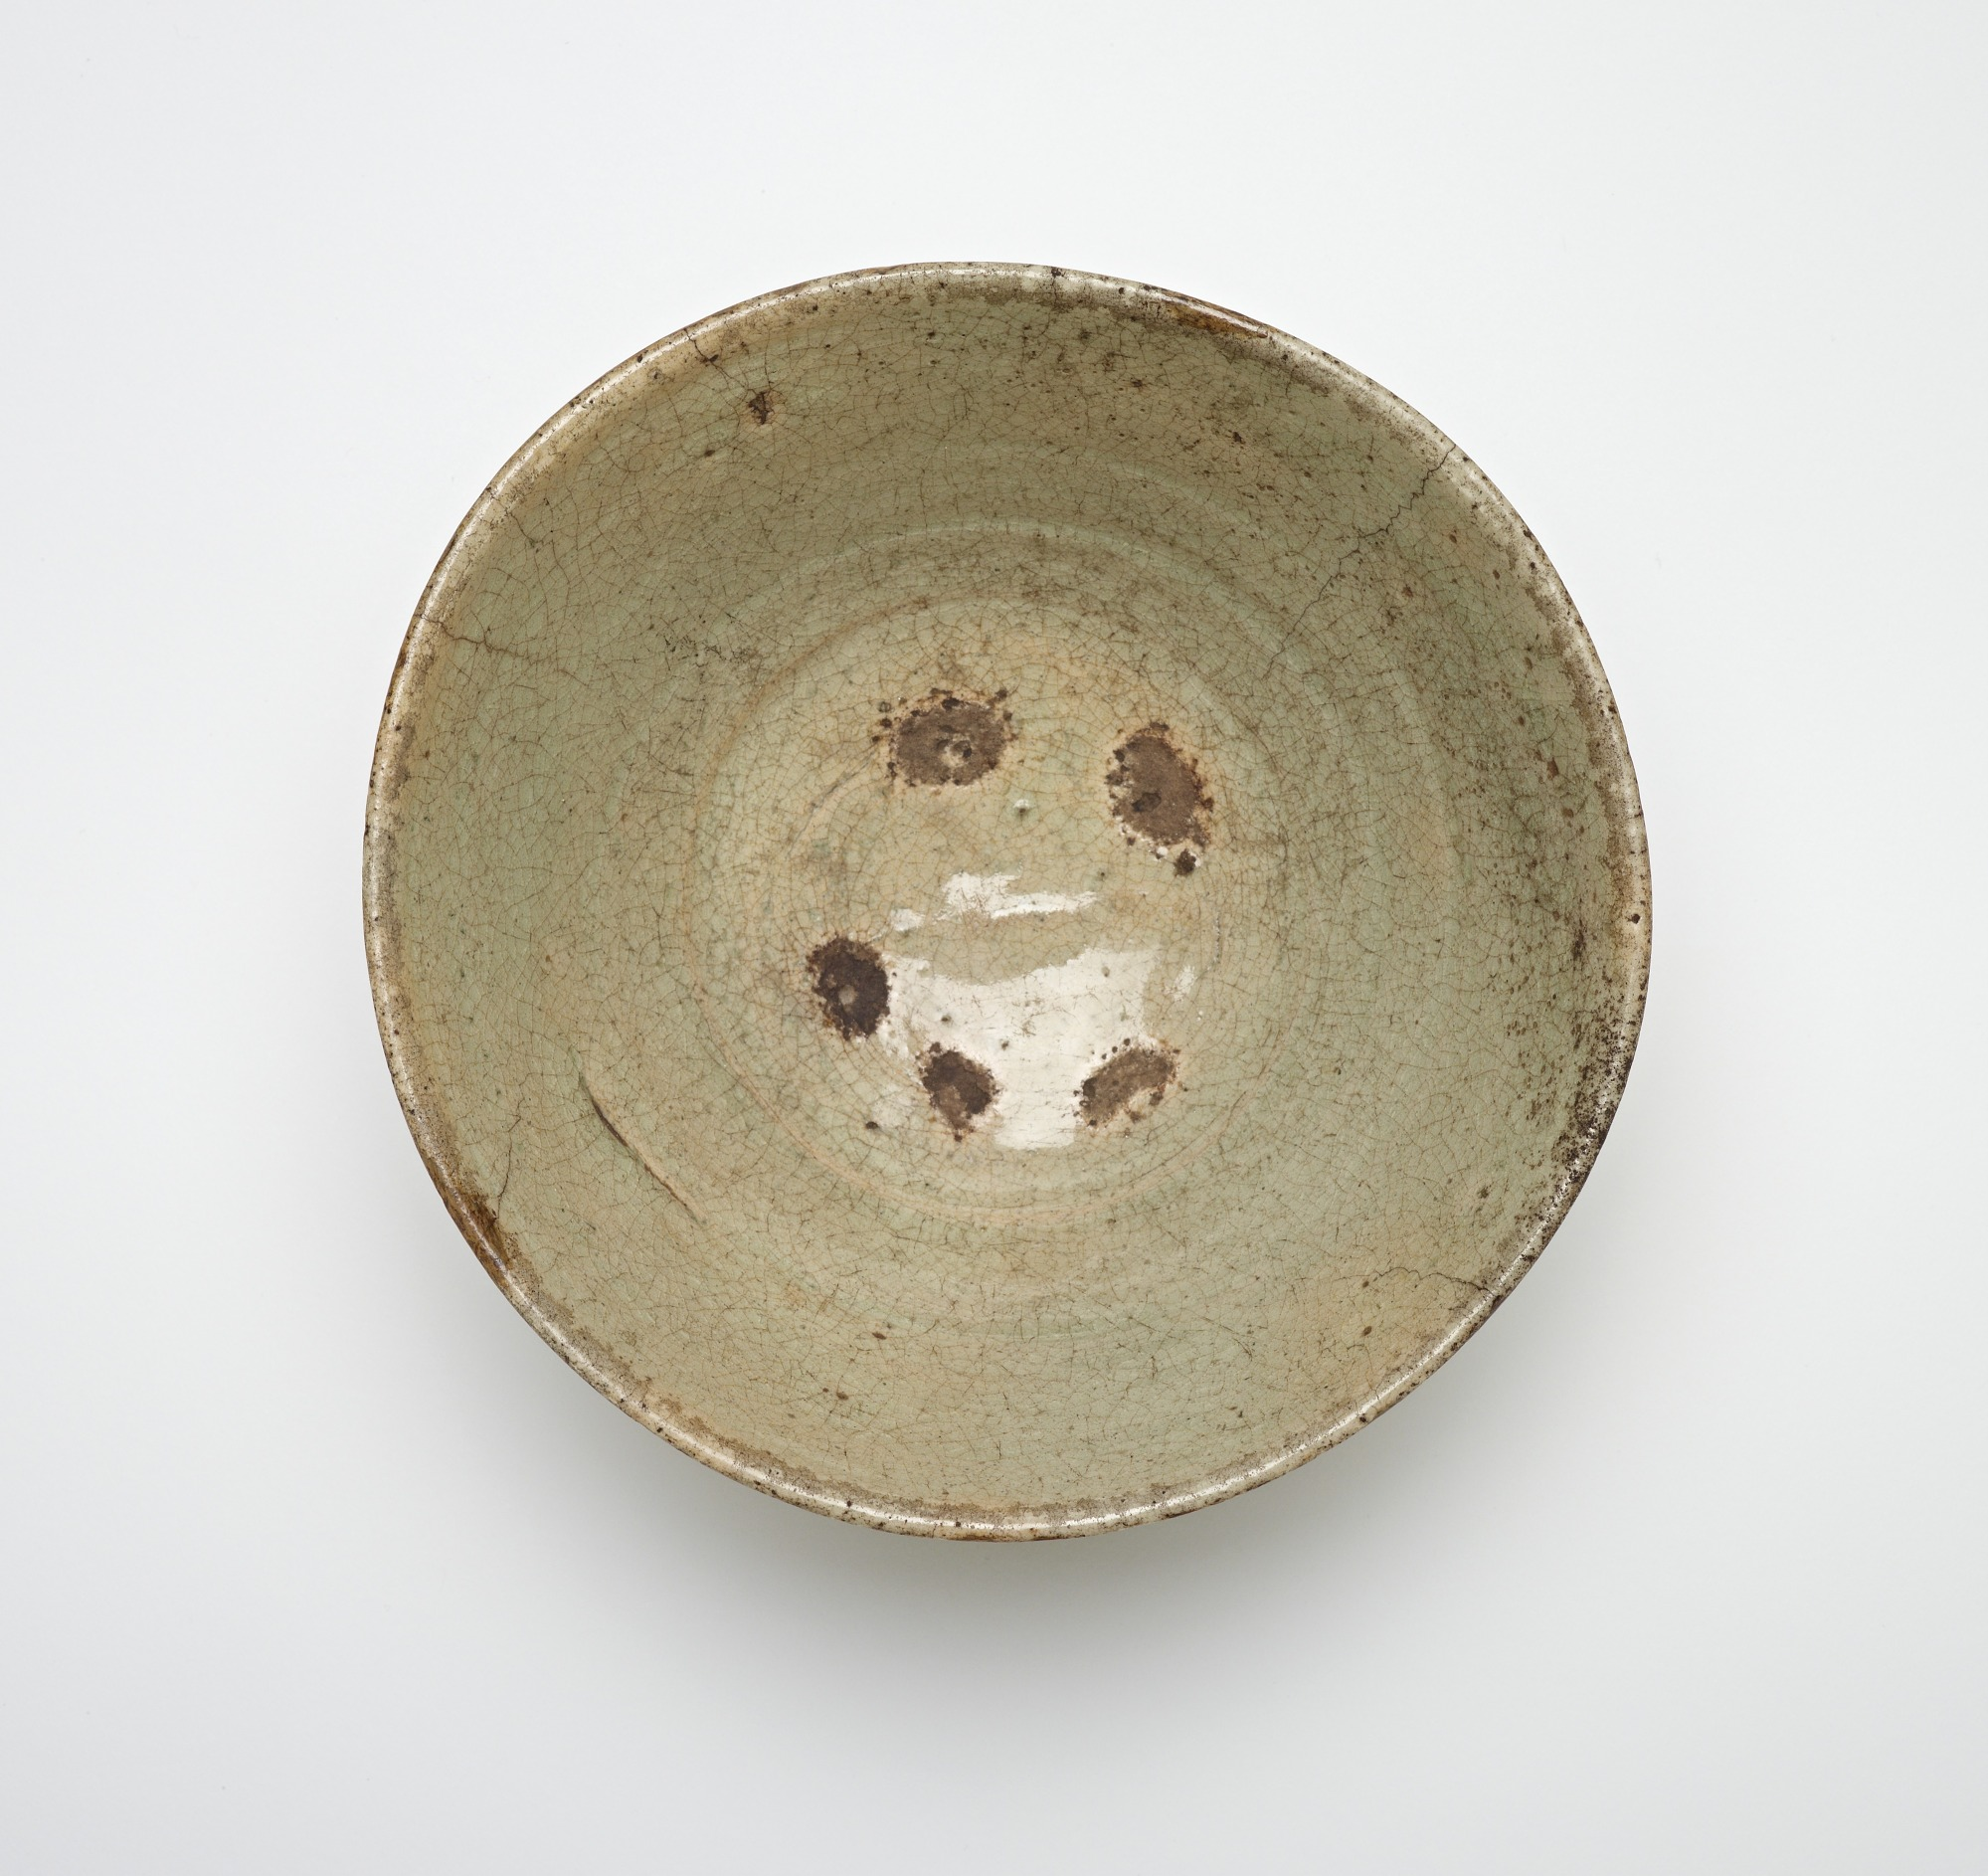 interior: Tea bowl